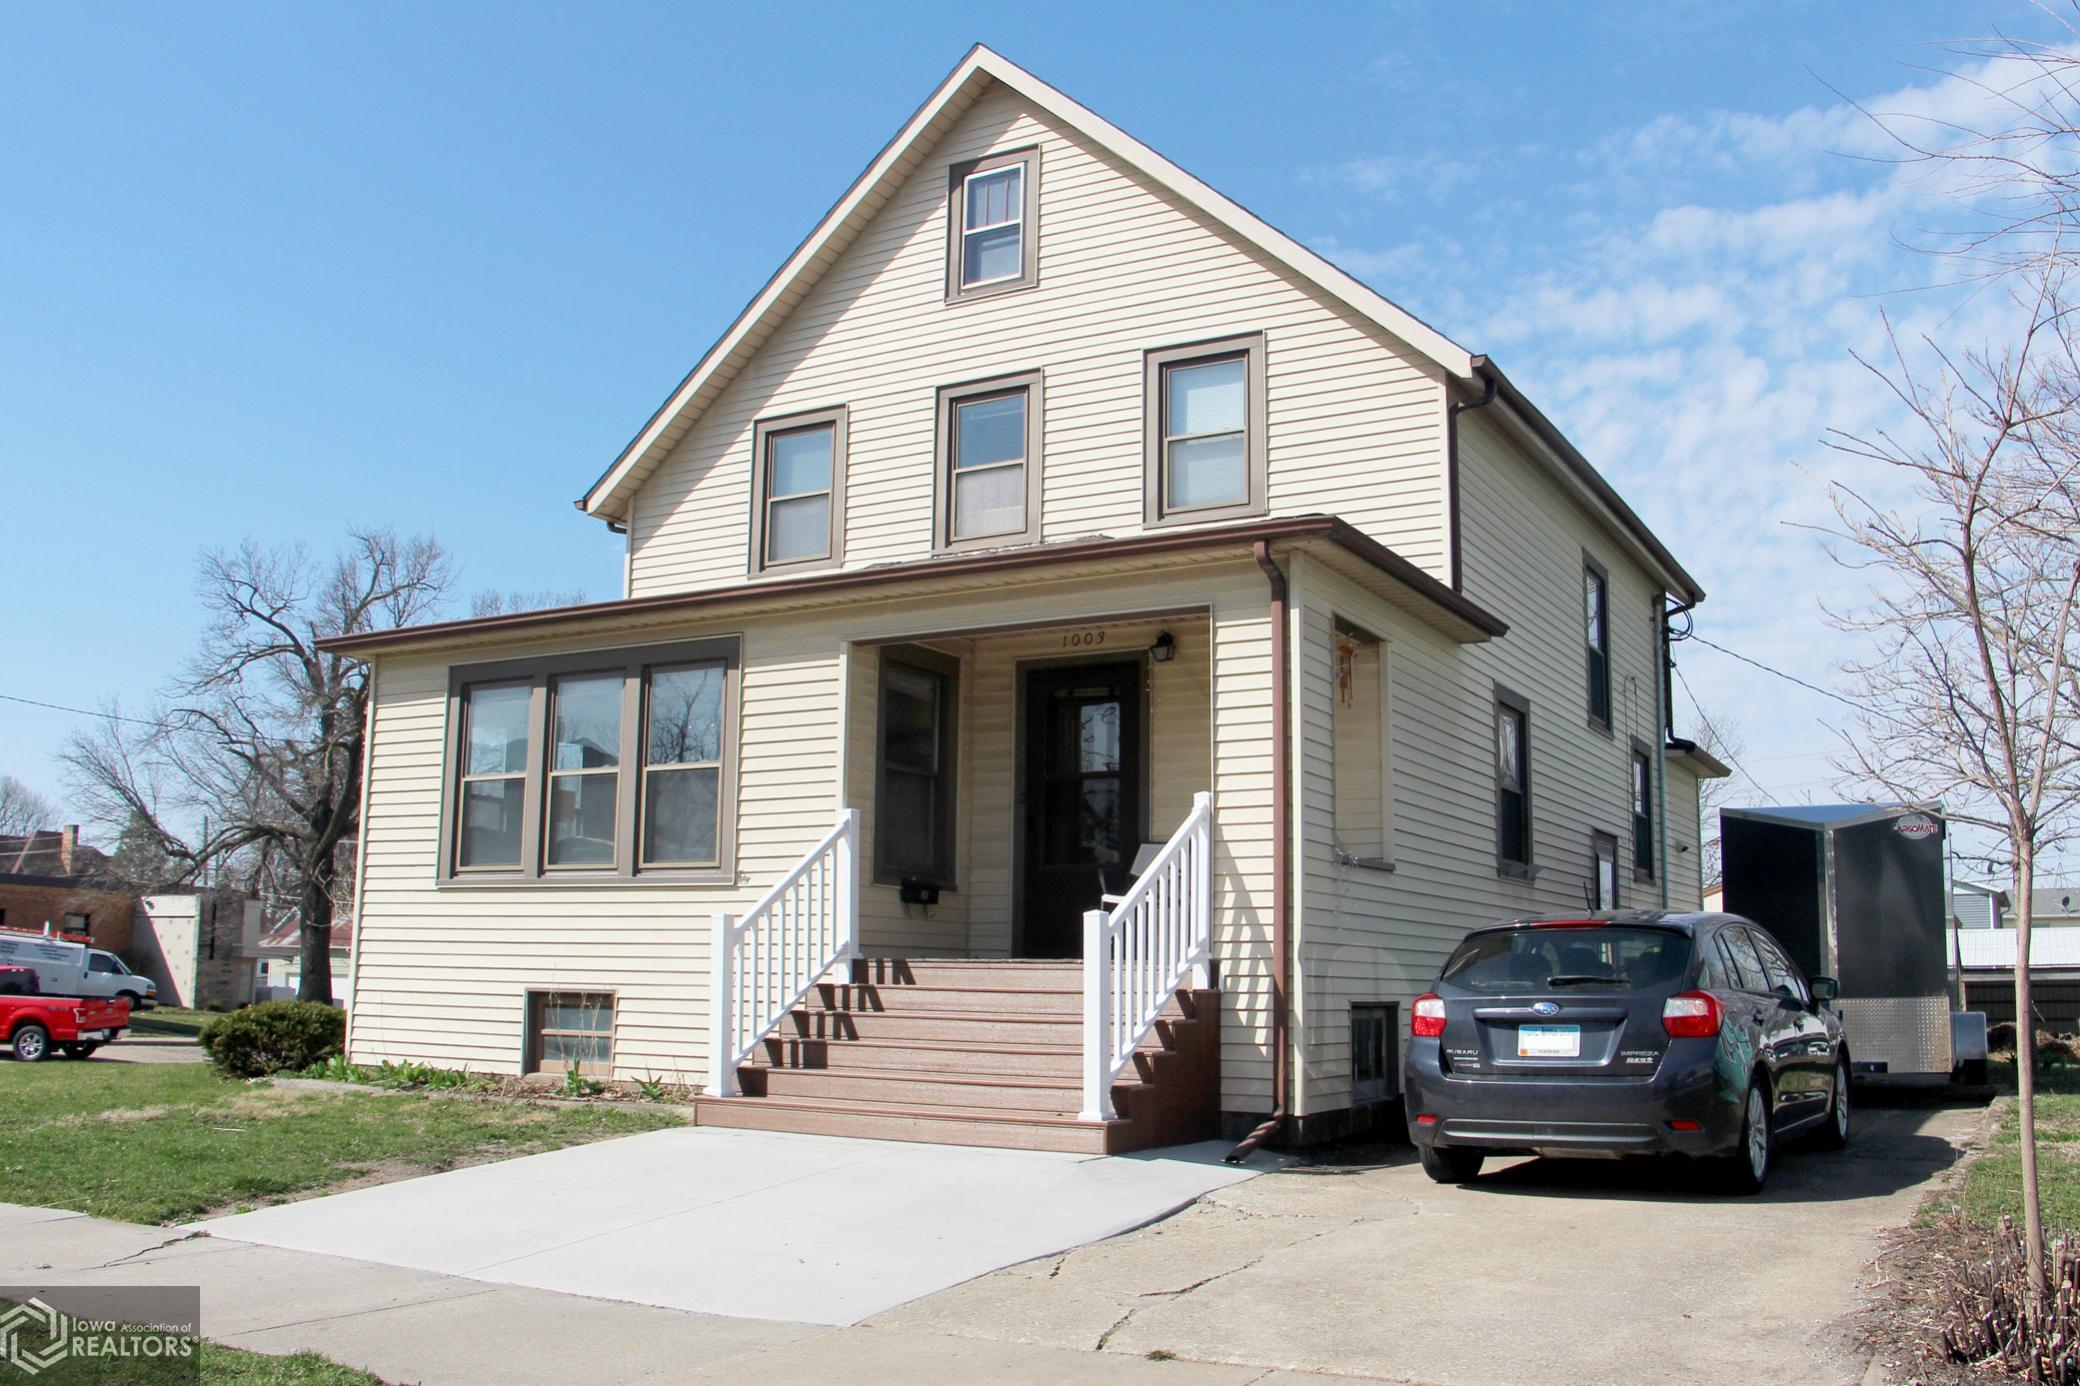 1003 East, Grinnell, Iowa 50112-1754, 2 Bedrooms Bedrooms, ,1 BathroomBathrooms,Single Family,For Sale,East,5732802